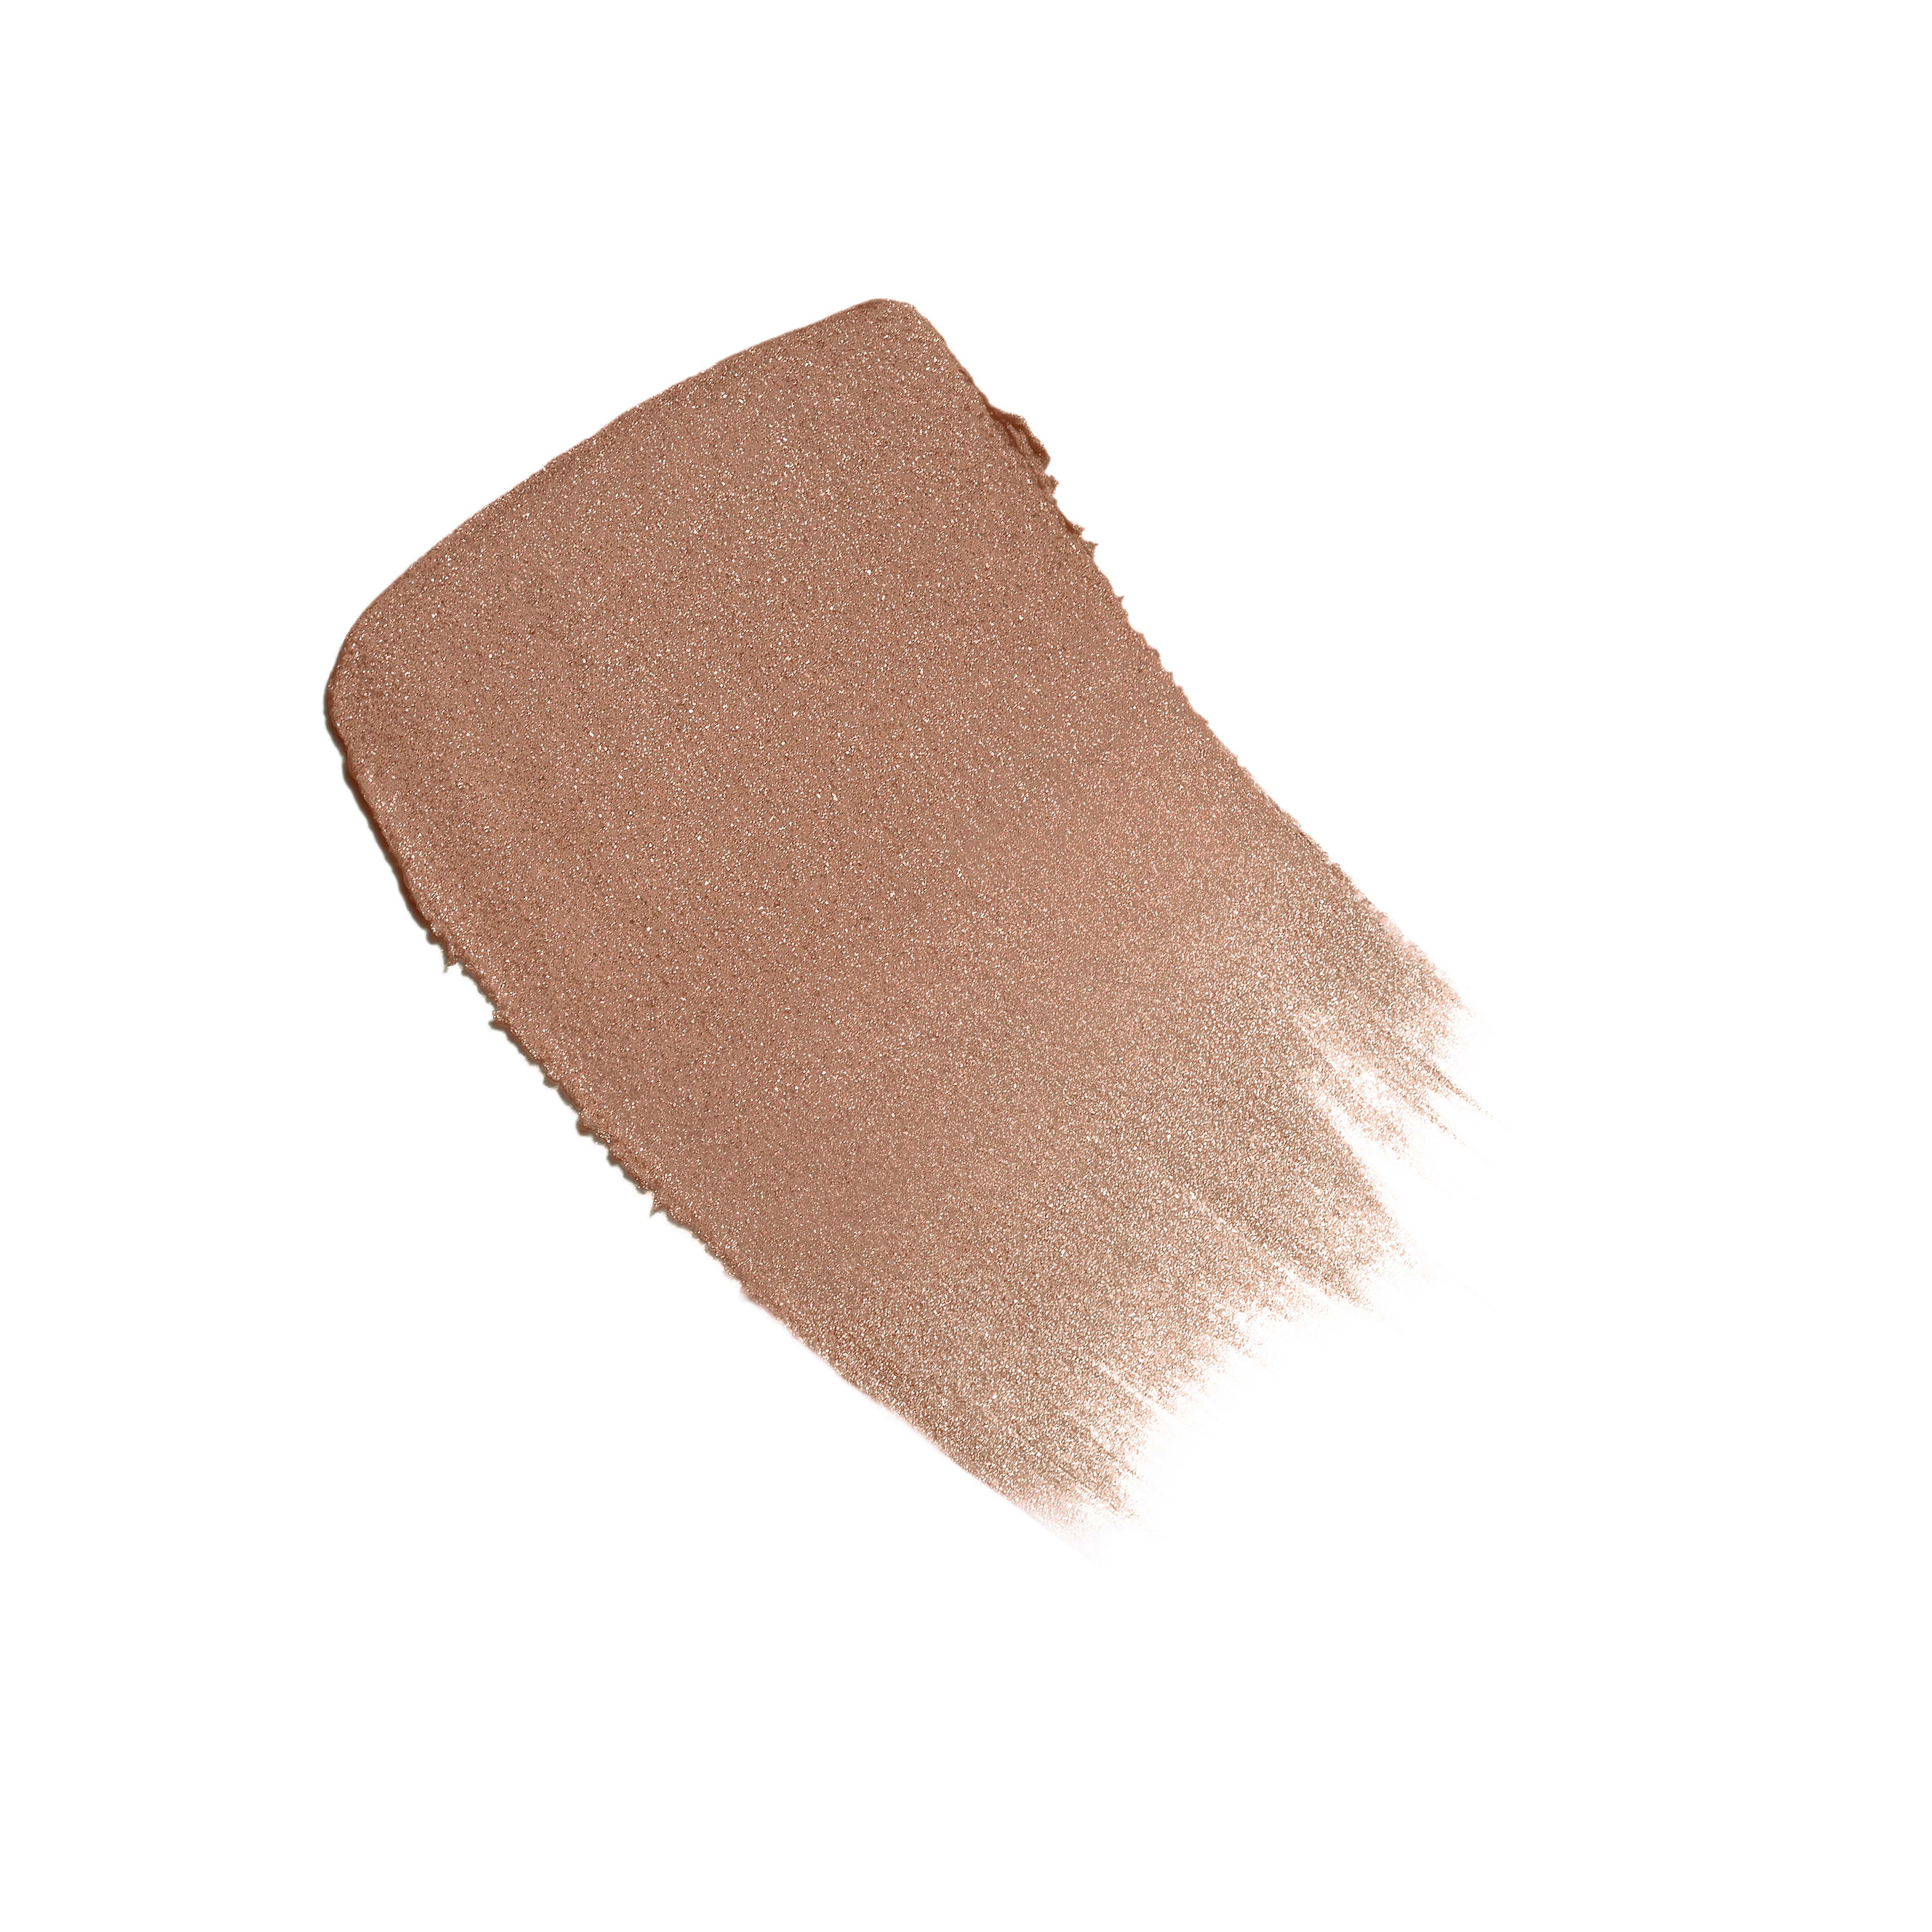 LES BEIGES - makeup - 0.28OZ. - Basic texture view